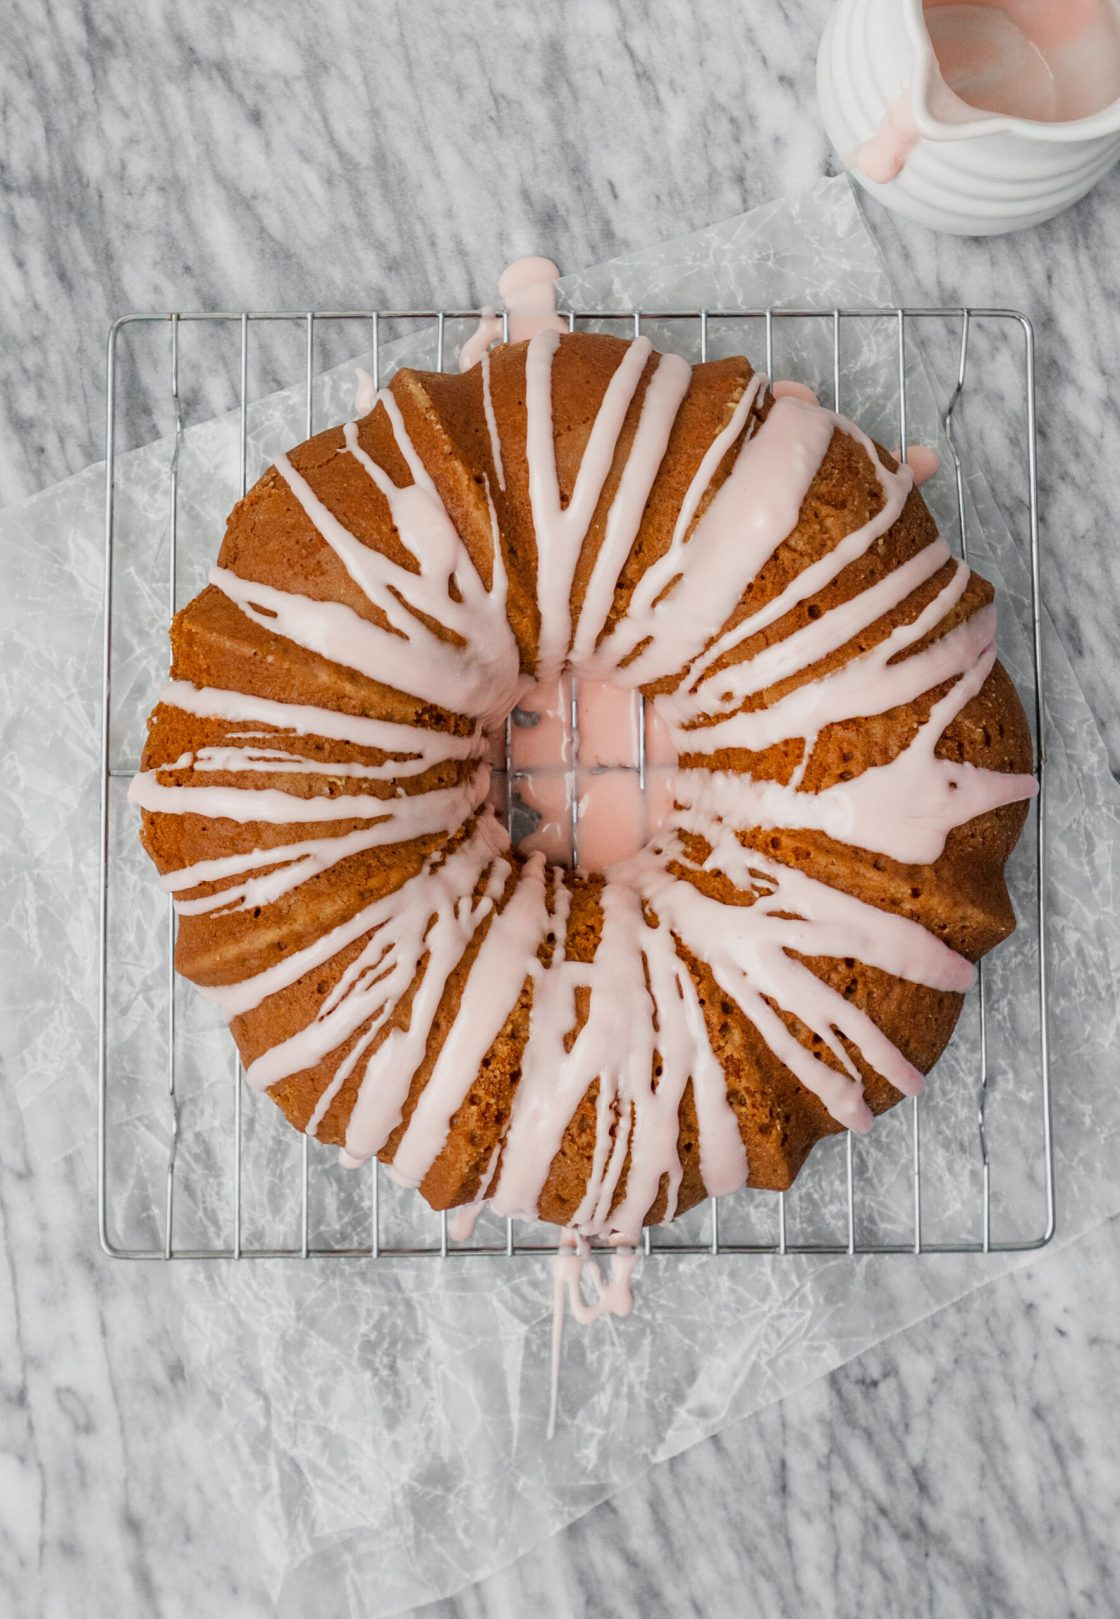 Tender bundt cake flavored with fresh grapefruit and Campari. This cake is naturally sweetened with honey, easy to whip, and elegant enough for a fancy party. | from Lauren Grant of Zestful Kitchen